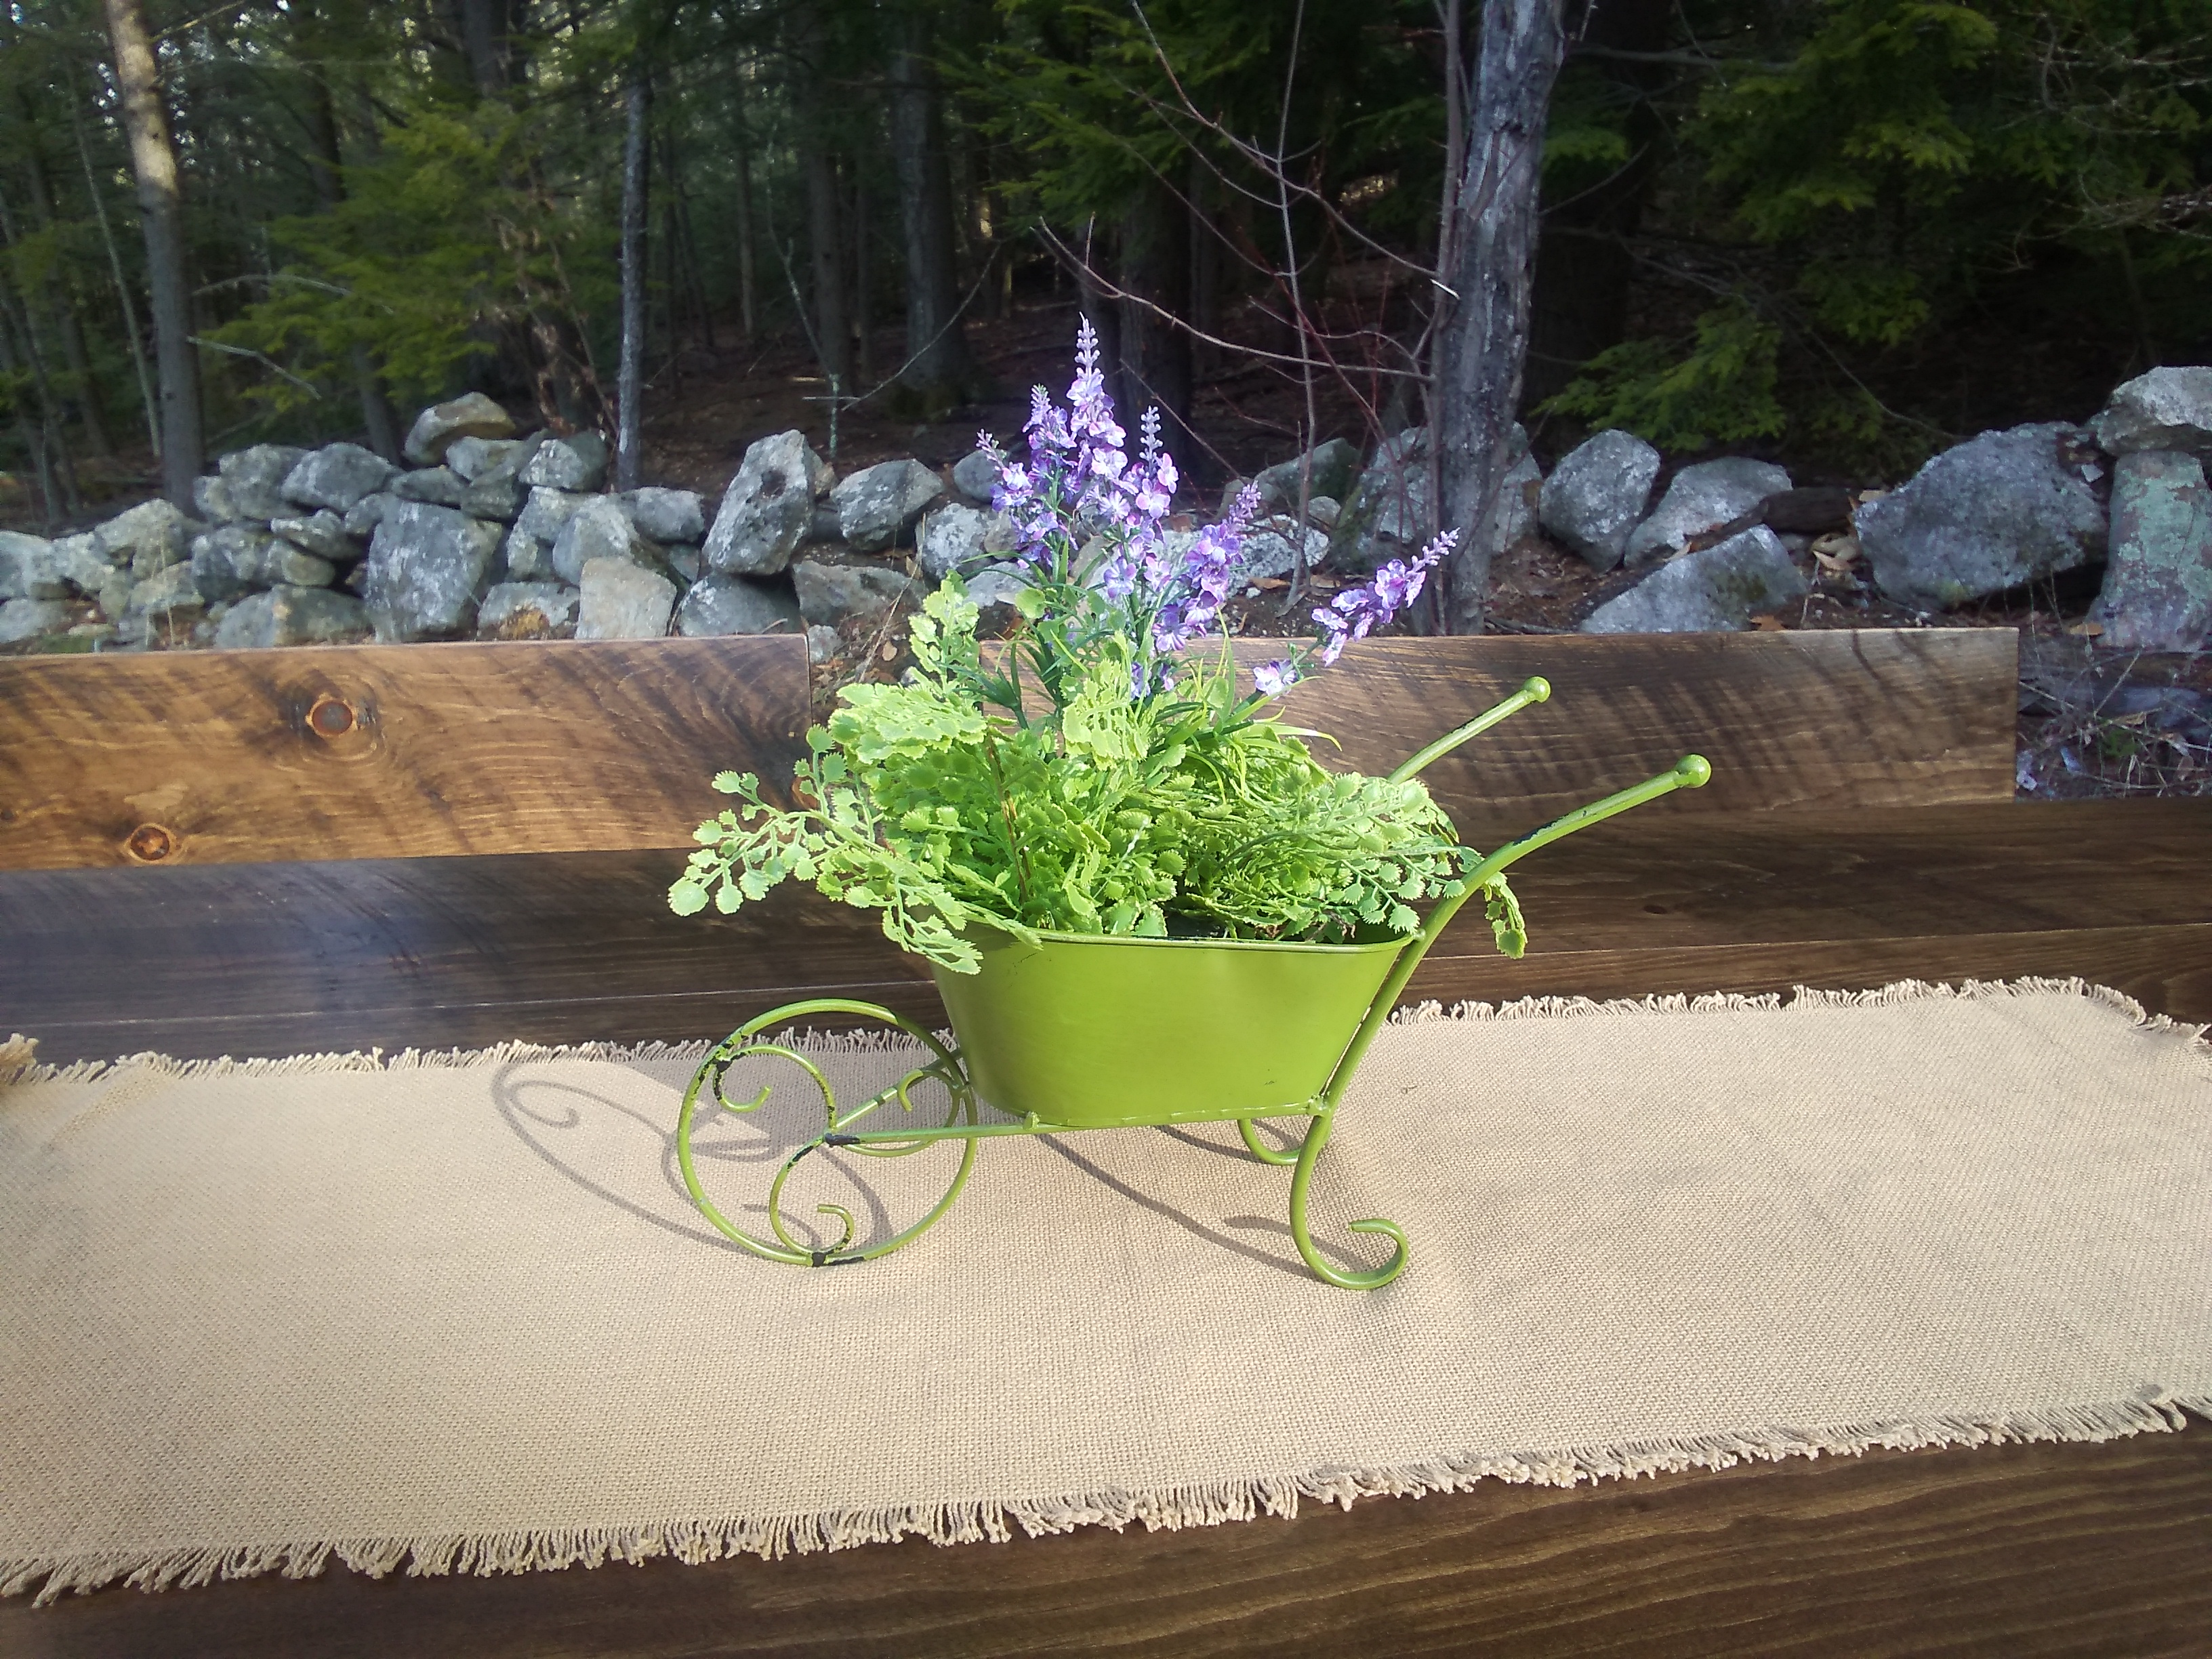 green wheelbarrow with ferns